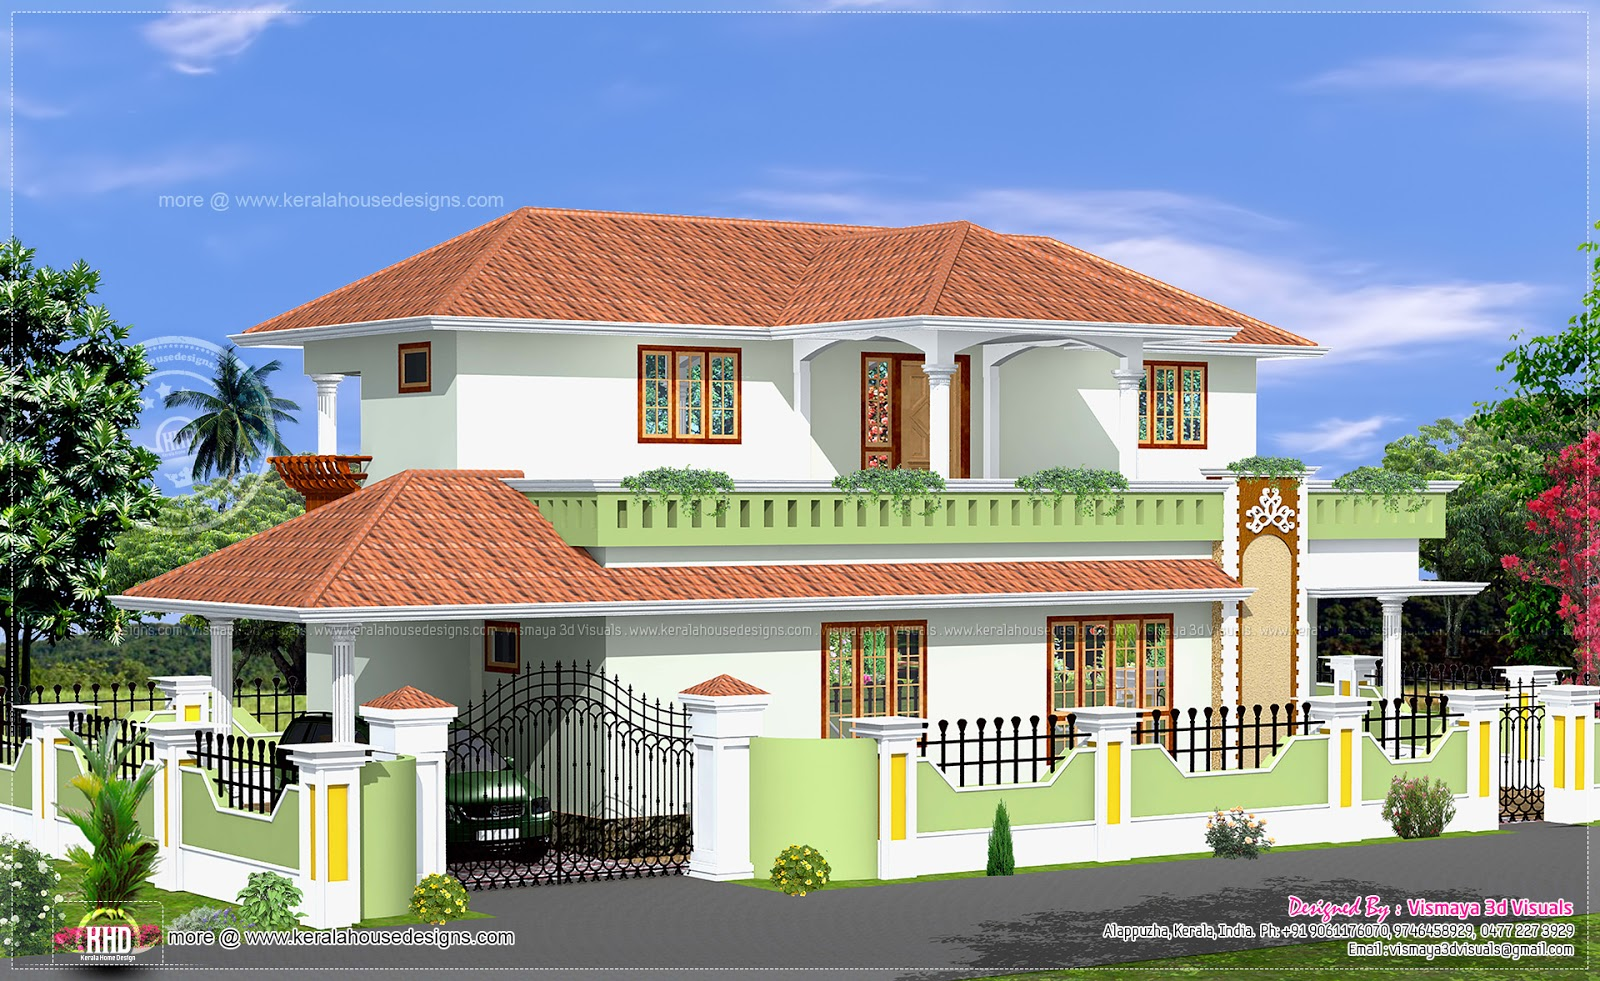 Simple house designs kerala style home design and style for Simple small home plans